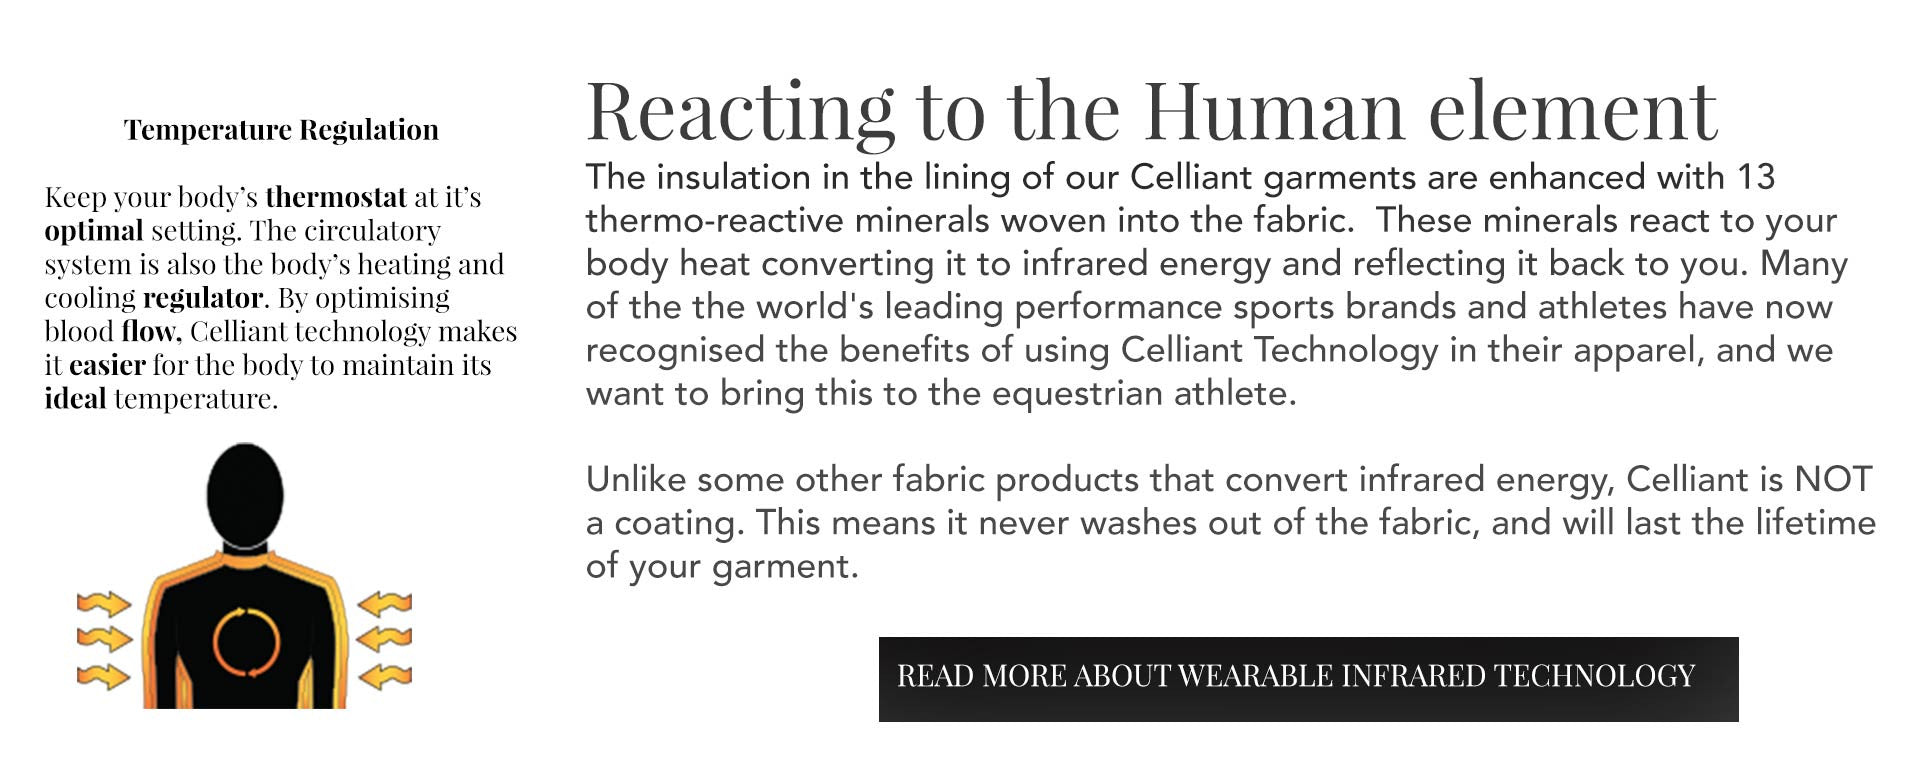 Celliant regulates your temperature | Wearable technology for equestrians